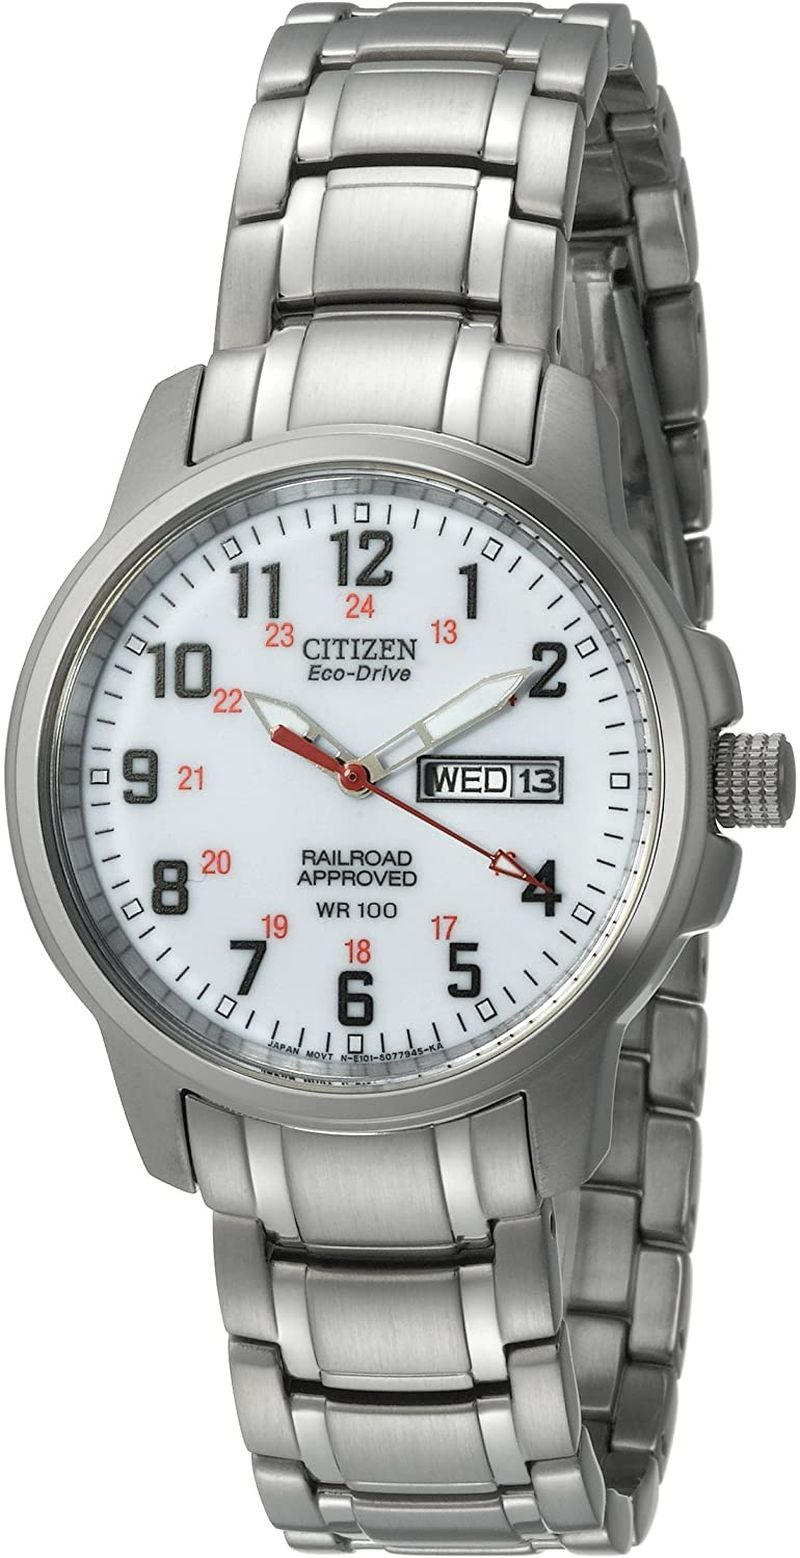 Citizen Men's BM8180-54A Eco-Drive Railroad Watch in Stainless Steel